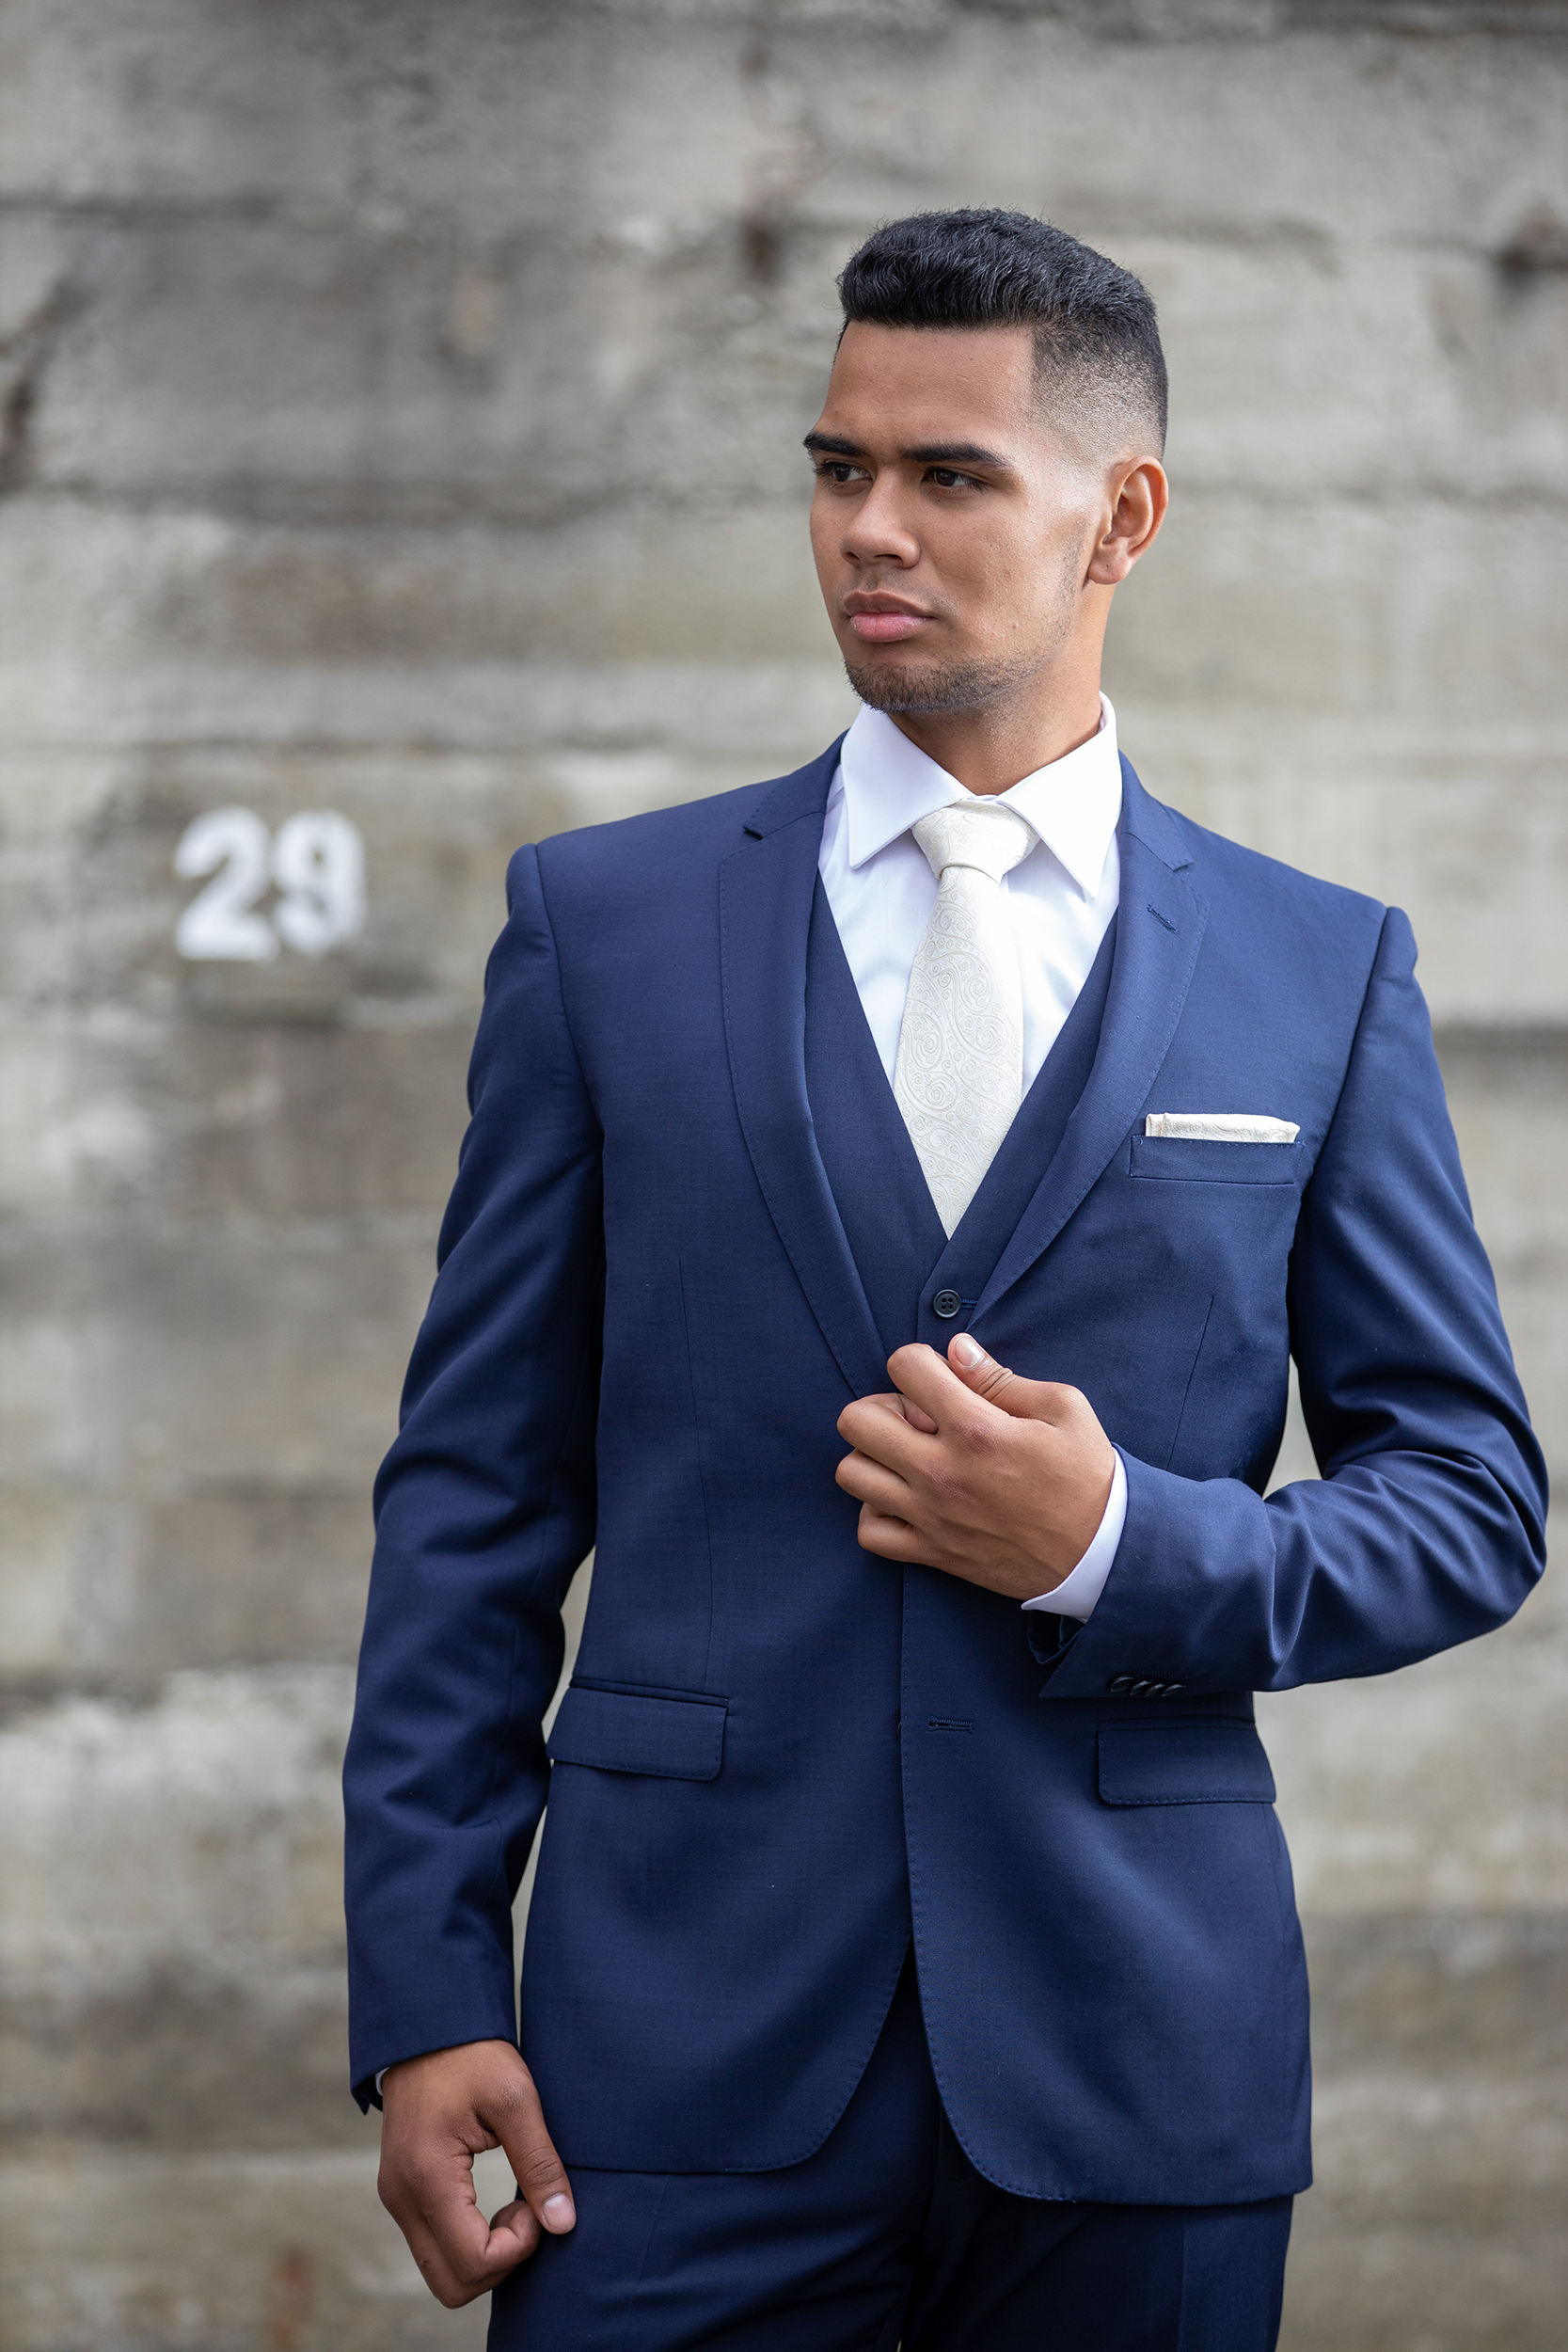 Navy - Slim Fit- Notch lapel- 2 button suit jacket- Tapered suit trouserHire price $120 NZDReg: 88—136Short: 88—124Tall: 88—120